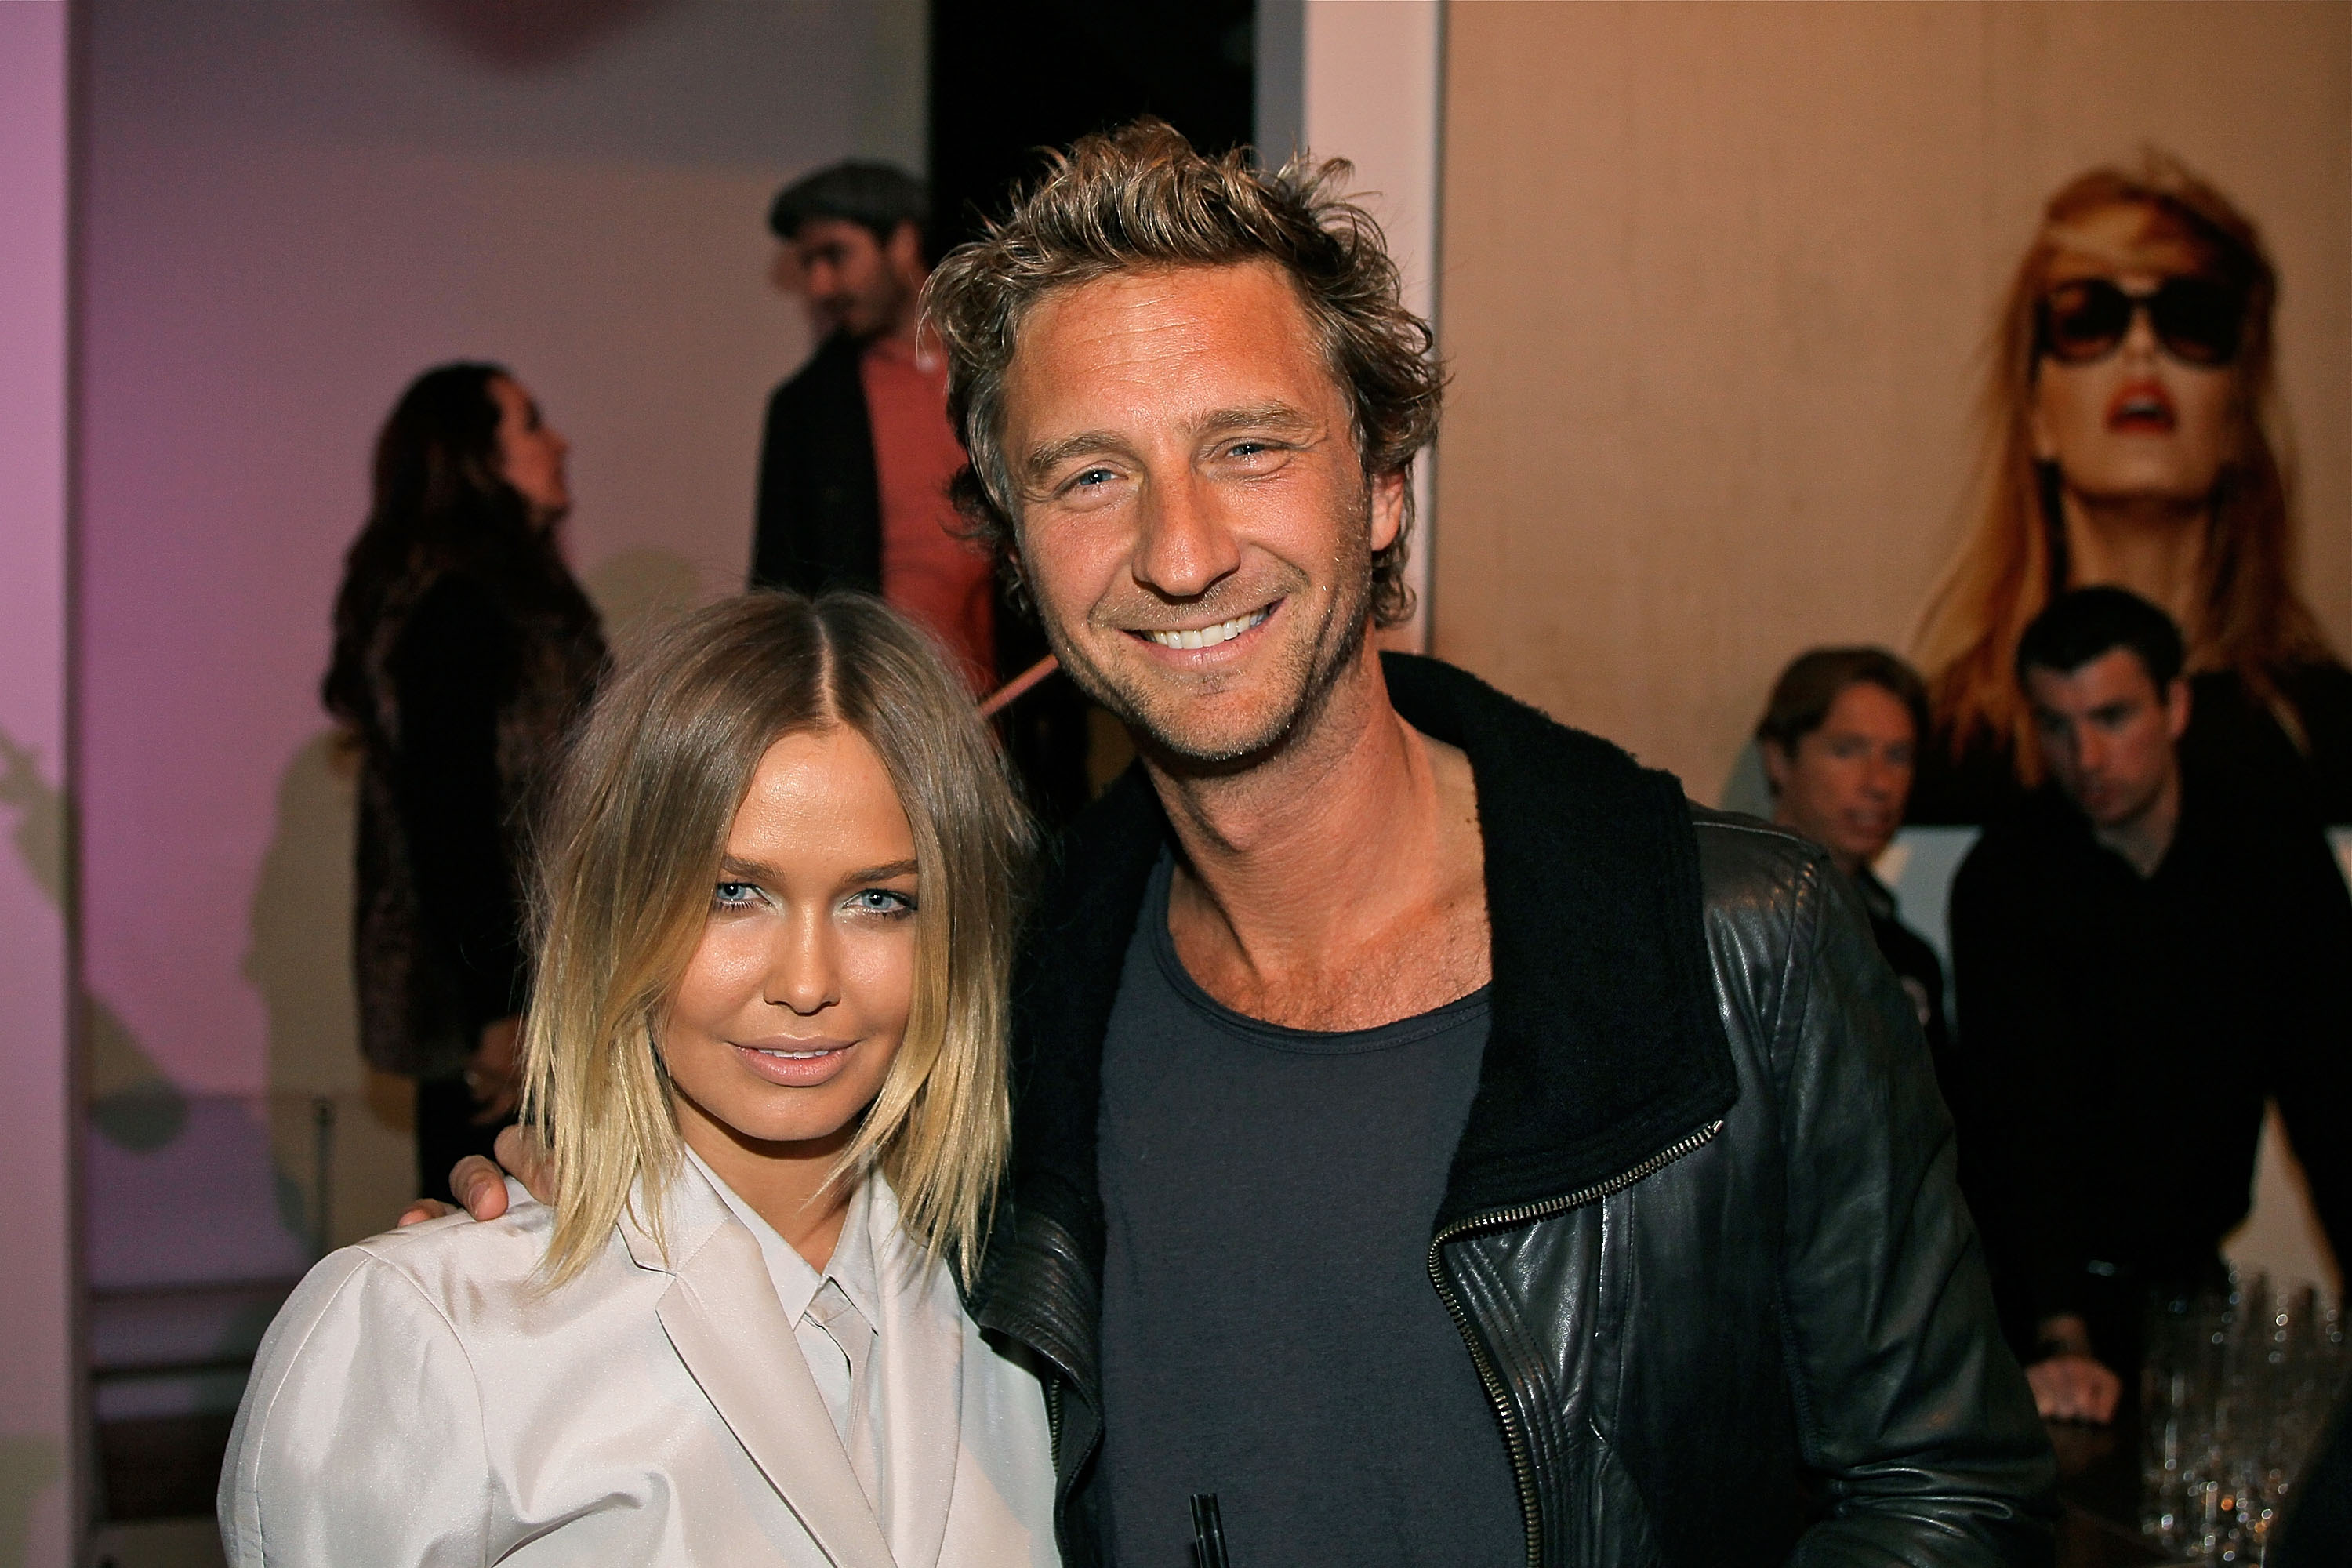 Lara Bingle and Justin Hemmes